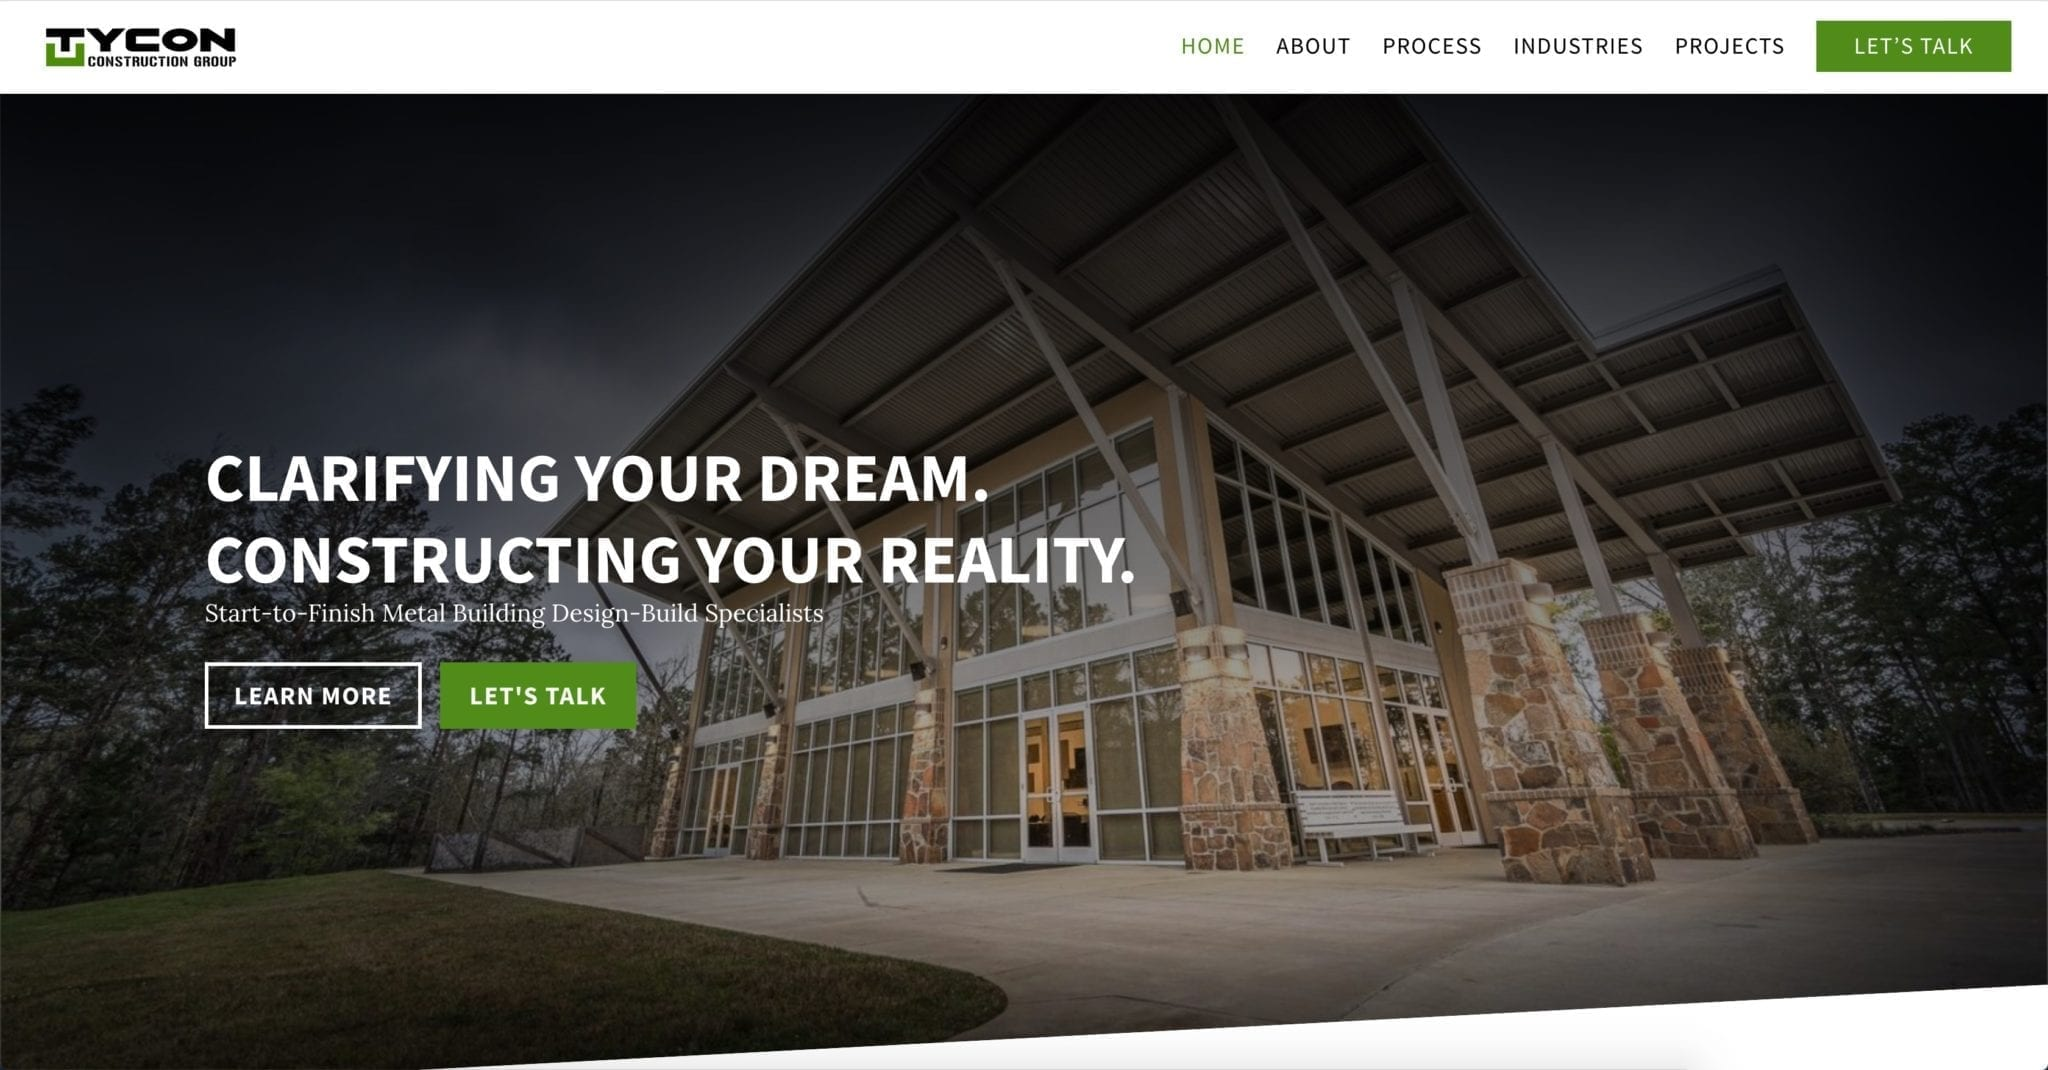 Web Design Project (Tycon Construction Group)